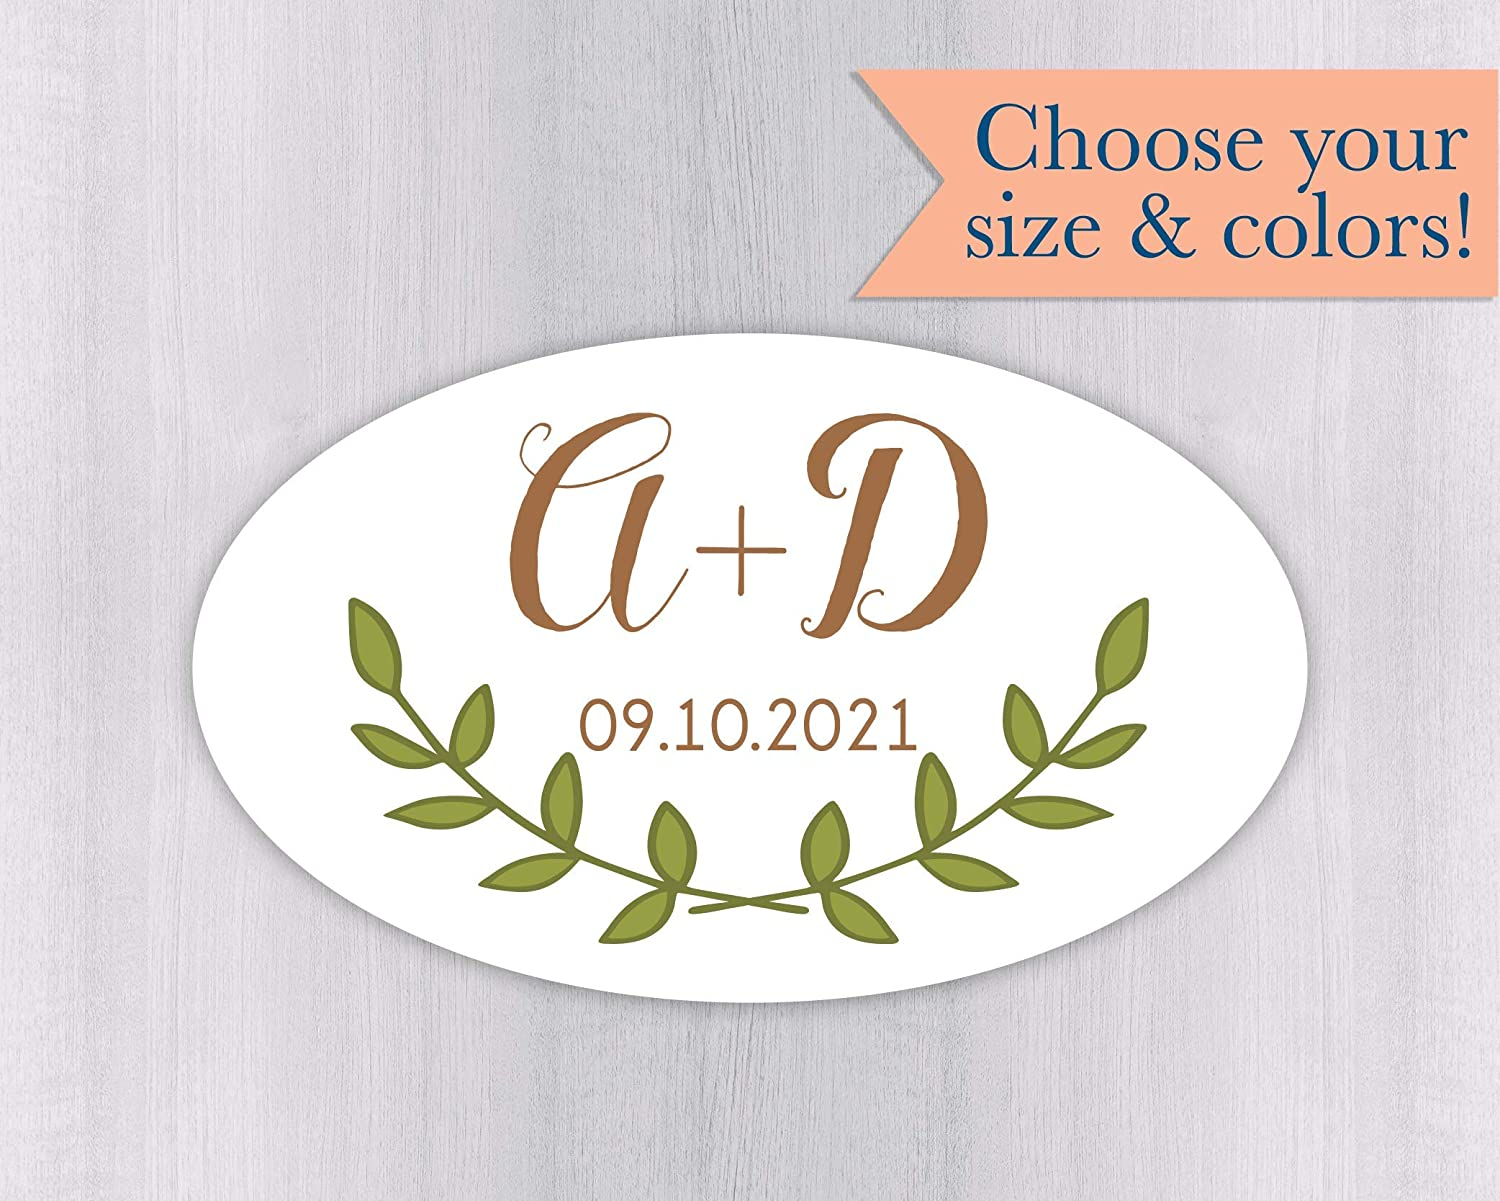 503edecf37d1 Amazon.com: Oval Initials and Date Wedding Stickers, Personalized ...